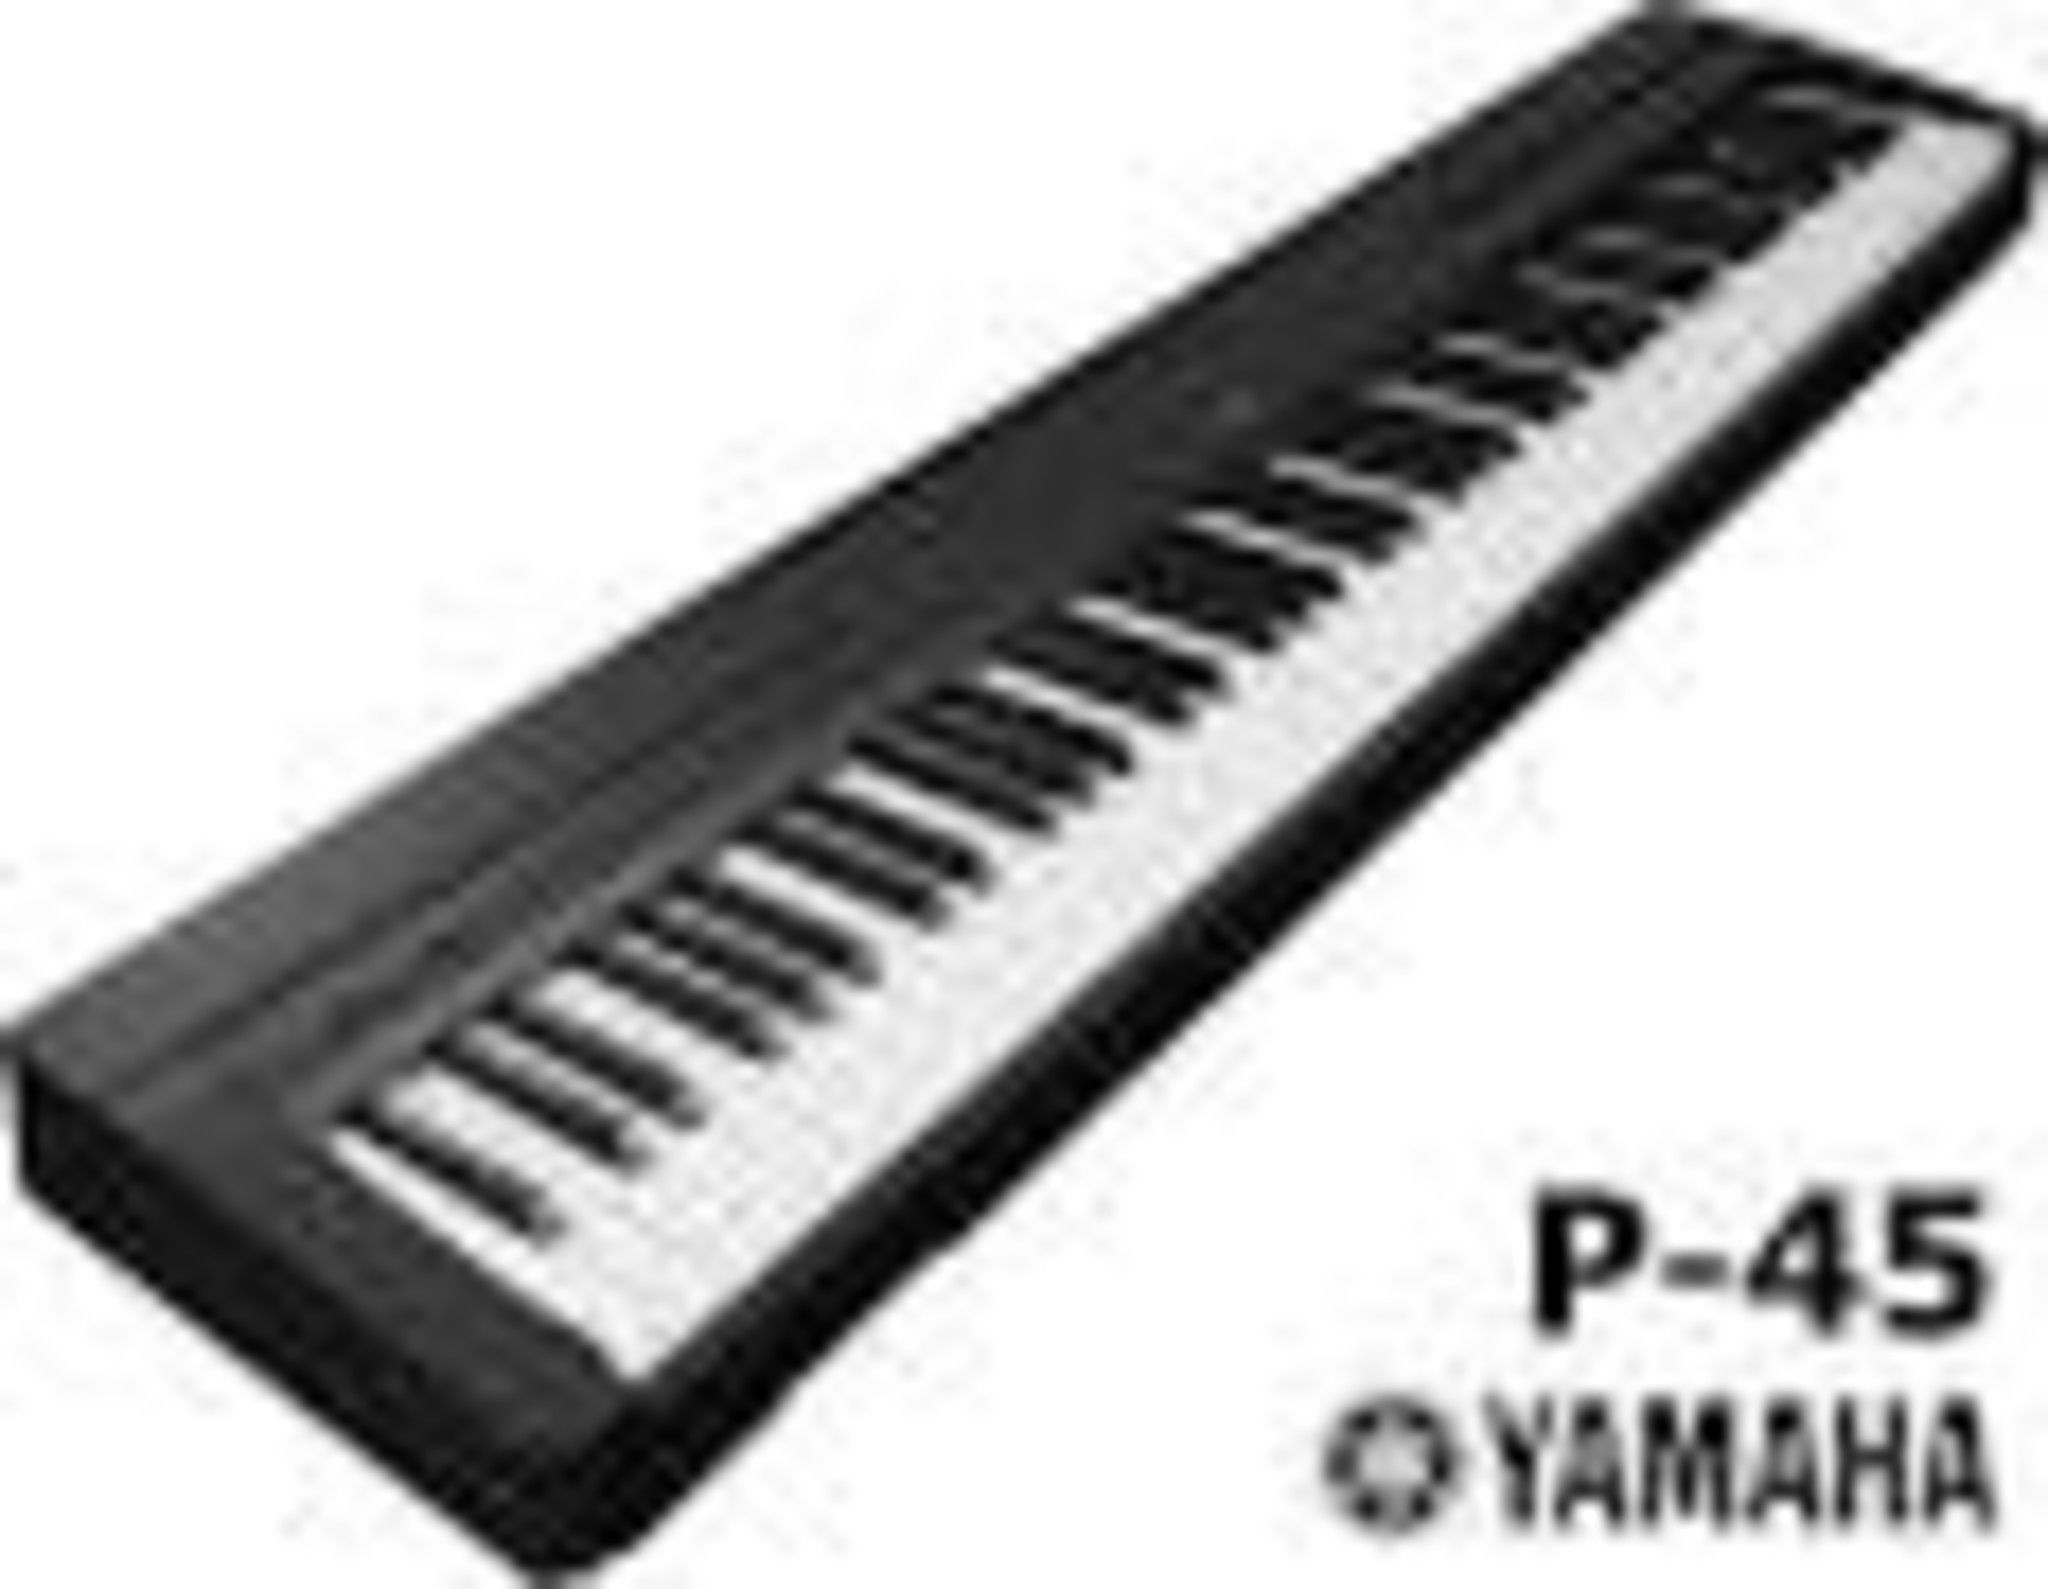 pianoforte digitale yamaha p45 88 tasti pesati con pedale sustain strumenti musicali tastiere. Black Bedroom Furniture Sets. Home Design Ideas